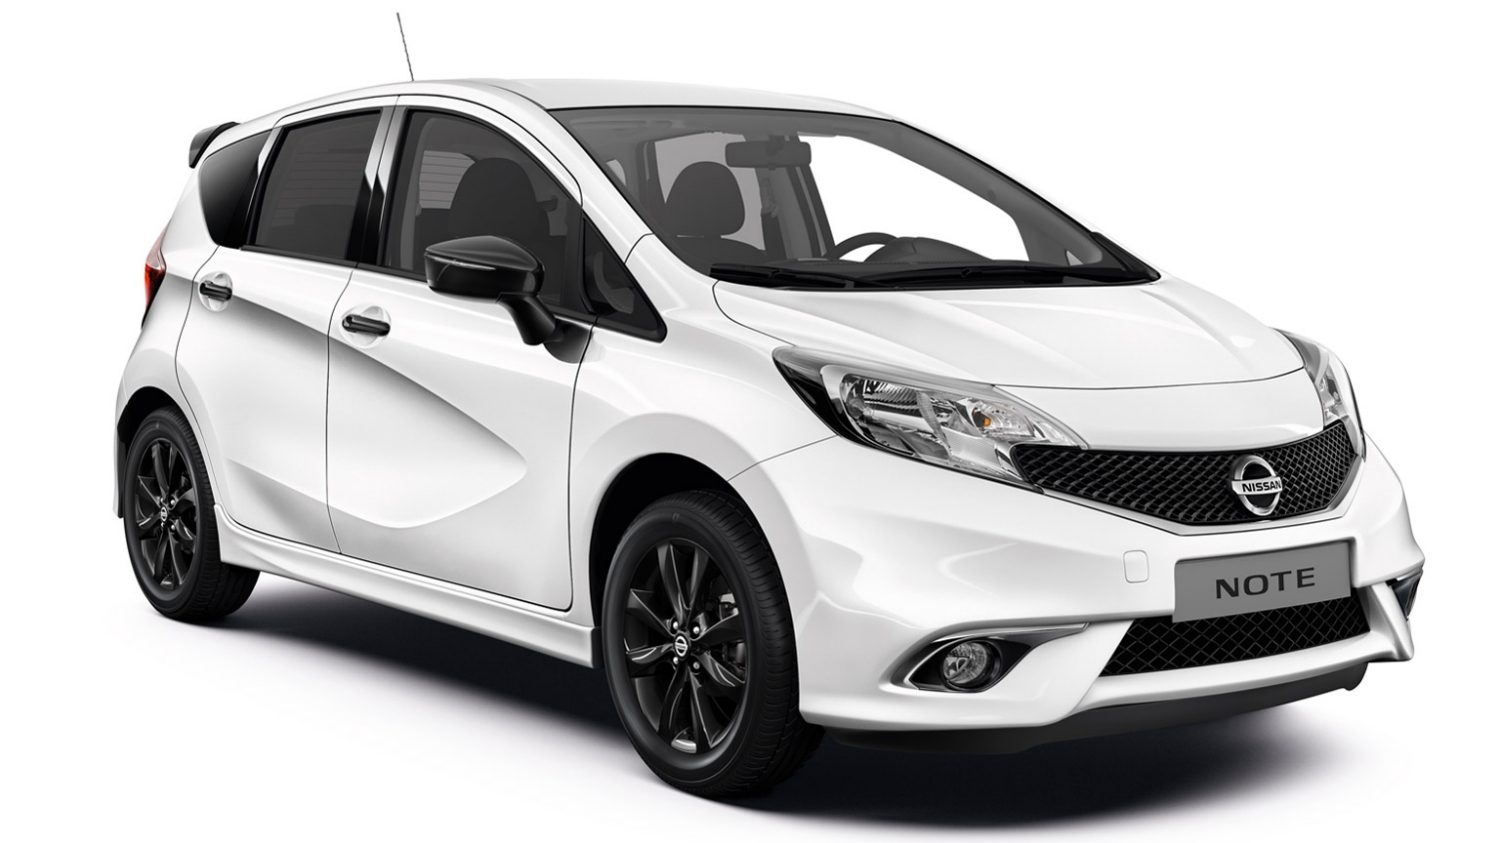 Nissan Note Black edition - 3/4 front view